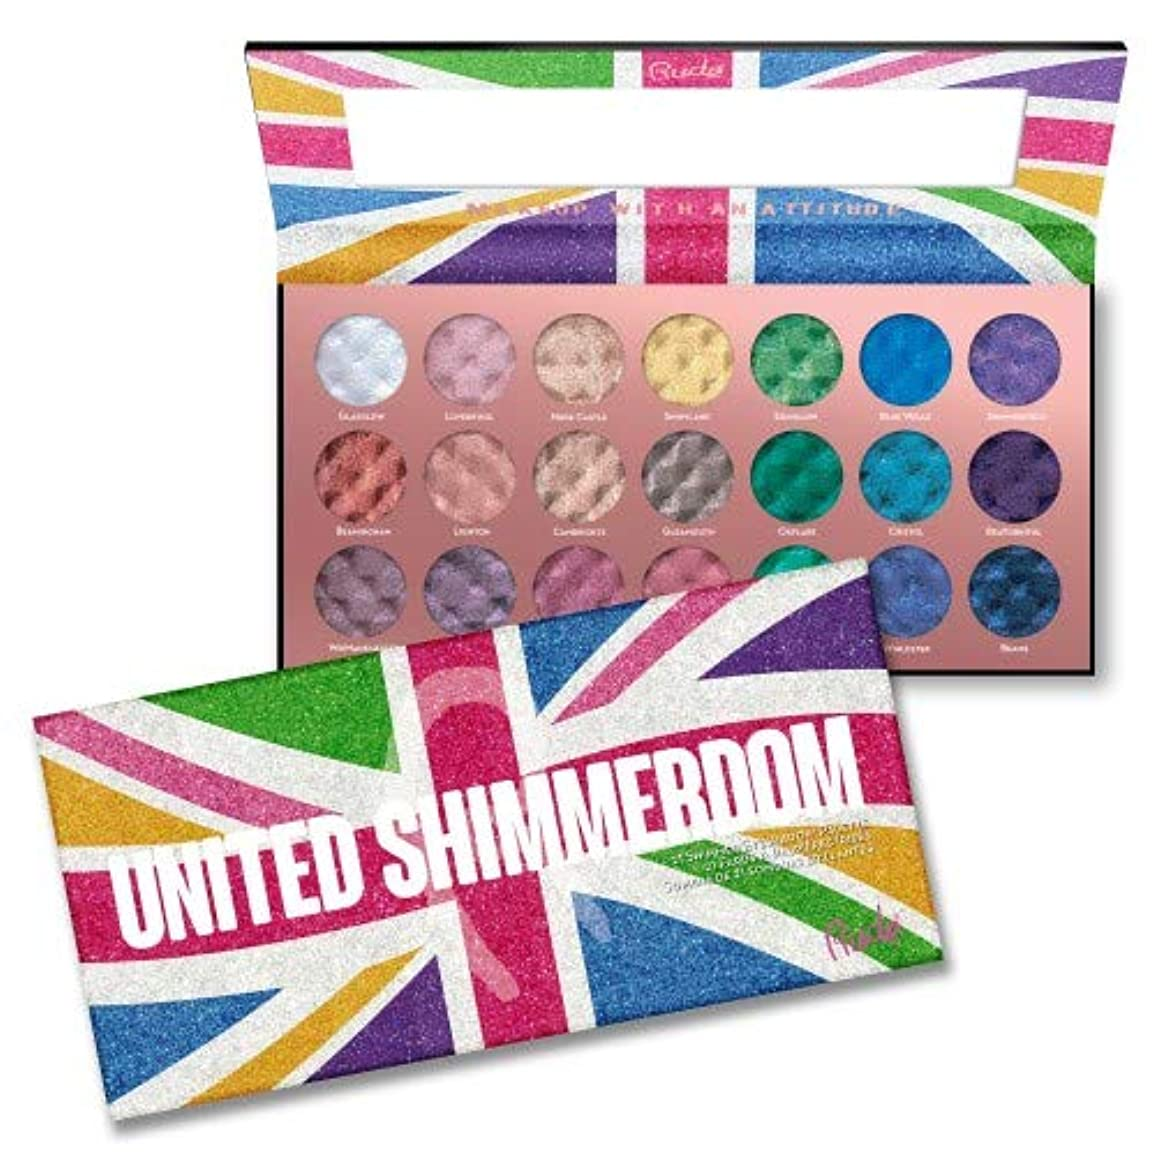 類似性終わり腹(3 Pack) RUDE United Shimmerdom - 21 Shimmer Eyeshadow Palette (並行輸入品)